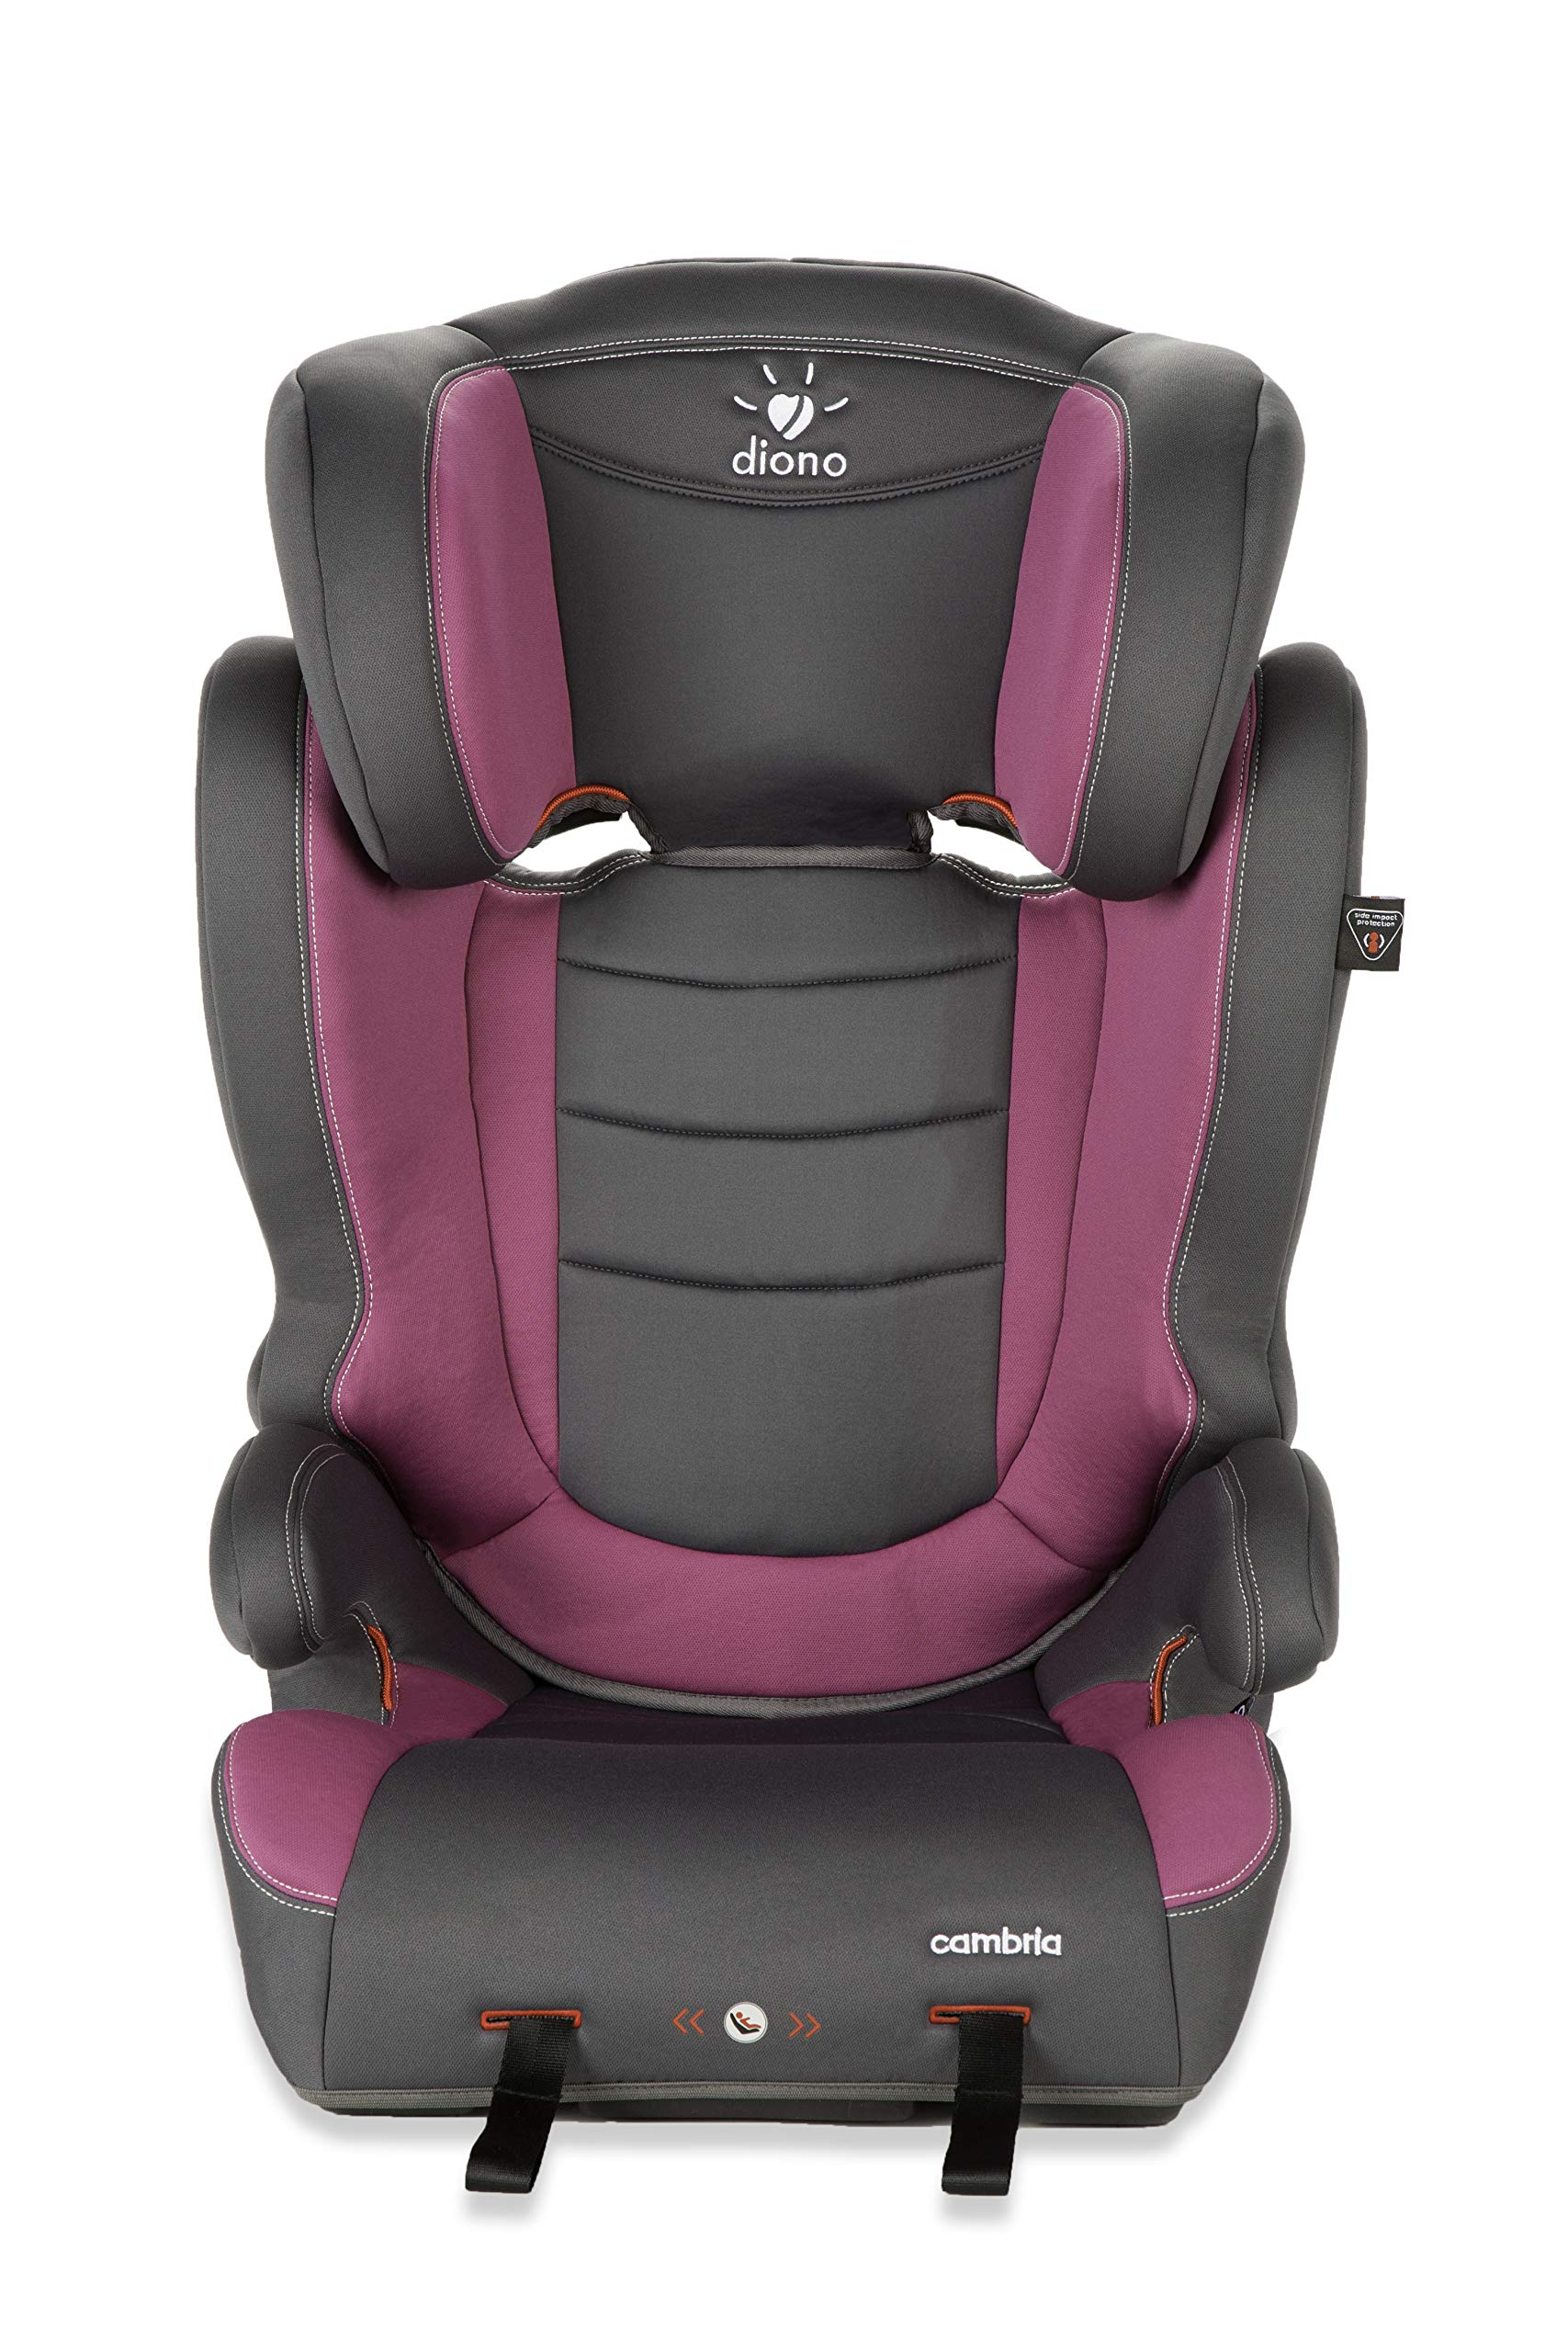 Diono Cambria Booster – 2-in-1 Car Seat – High Back and Backless Booster - Forward-Facing 40-120 Pounds - Overprotective in All the Right Ways, Raspberry